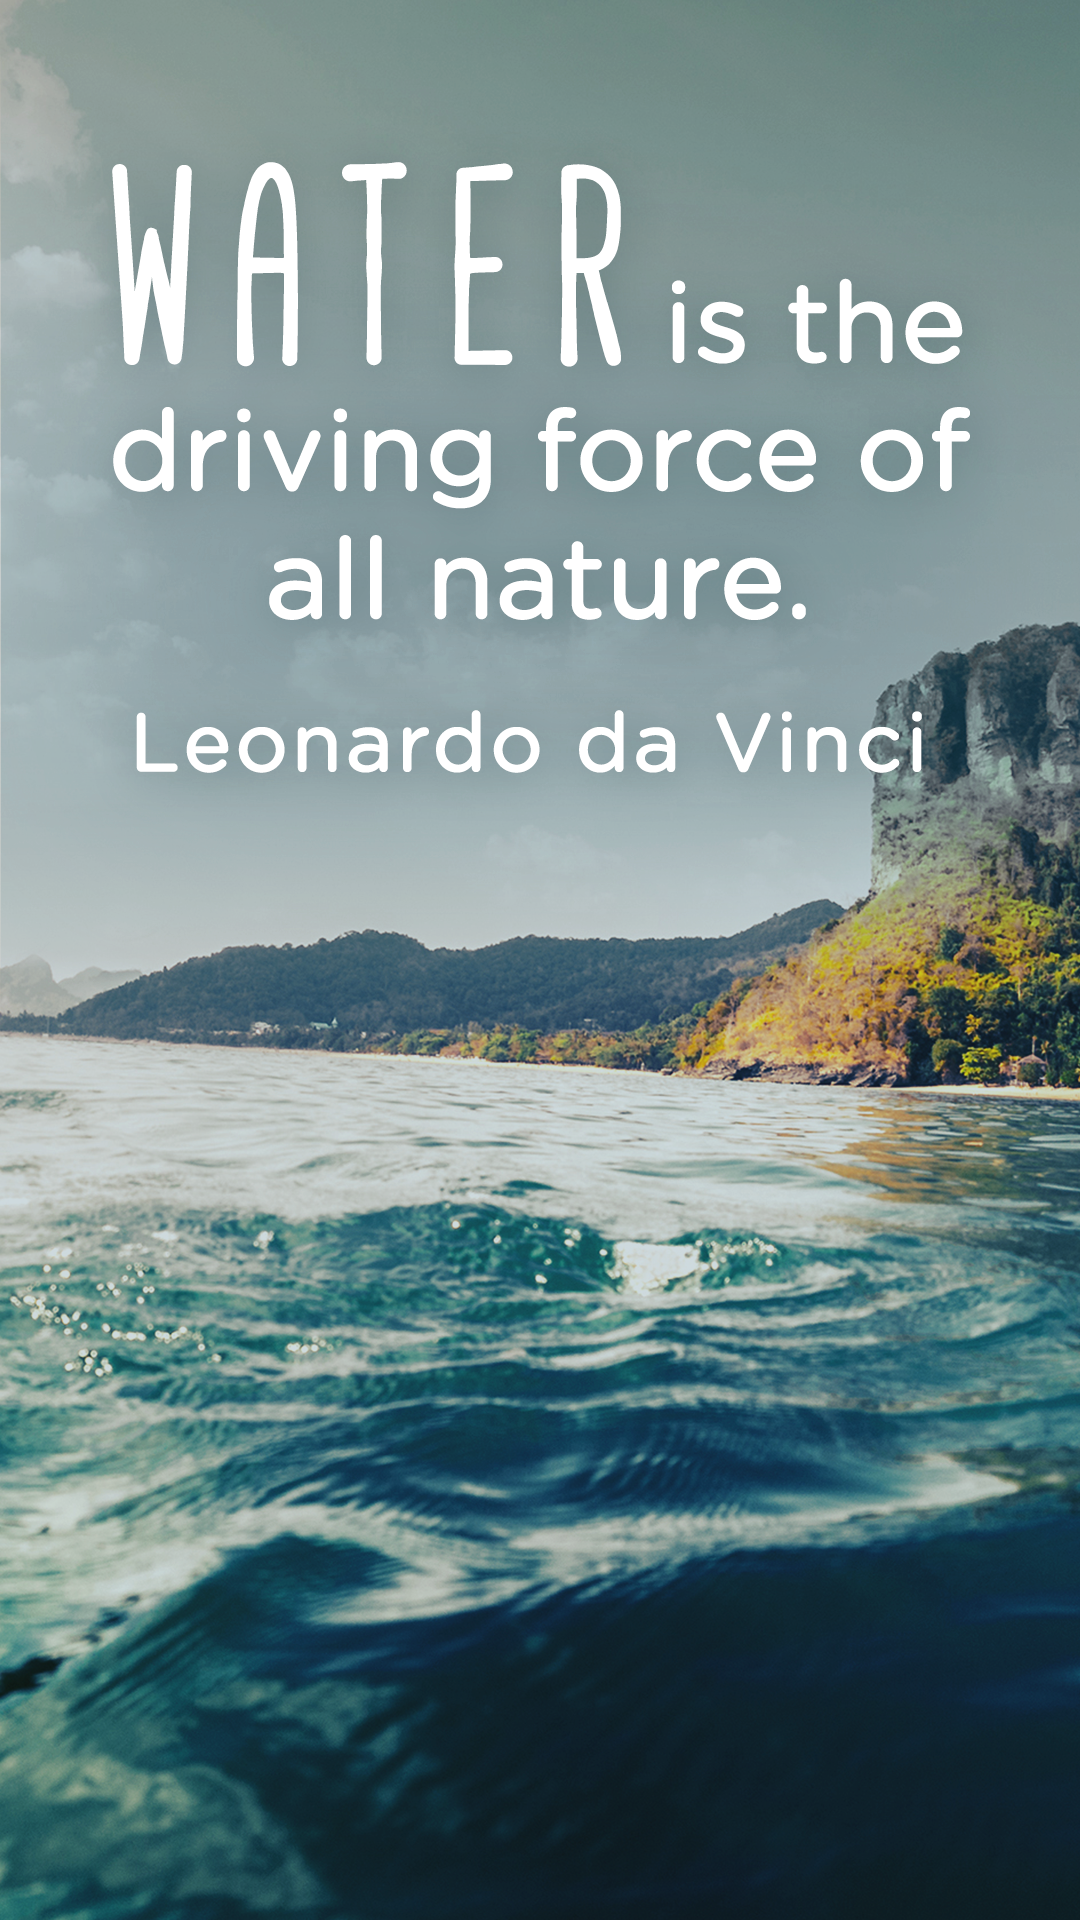 water is the driving force of all nature leonardo da vinci